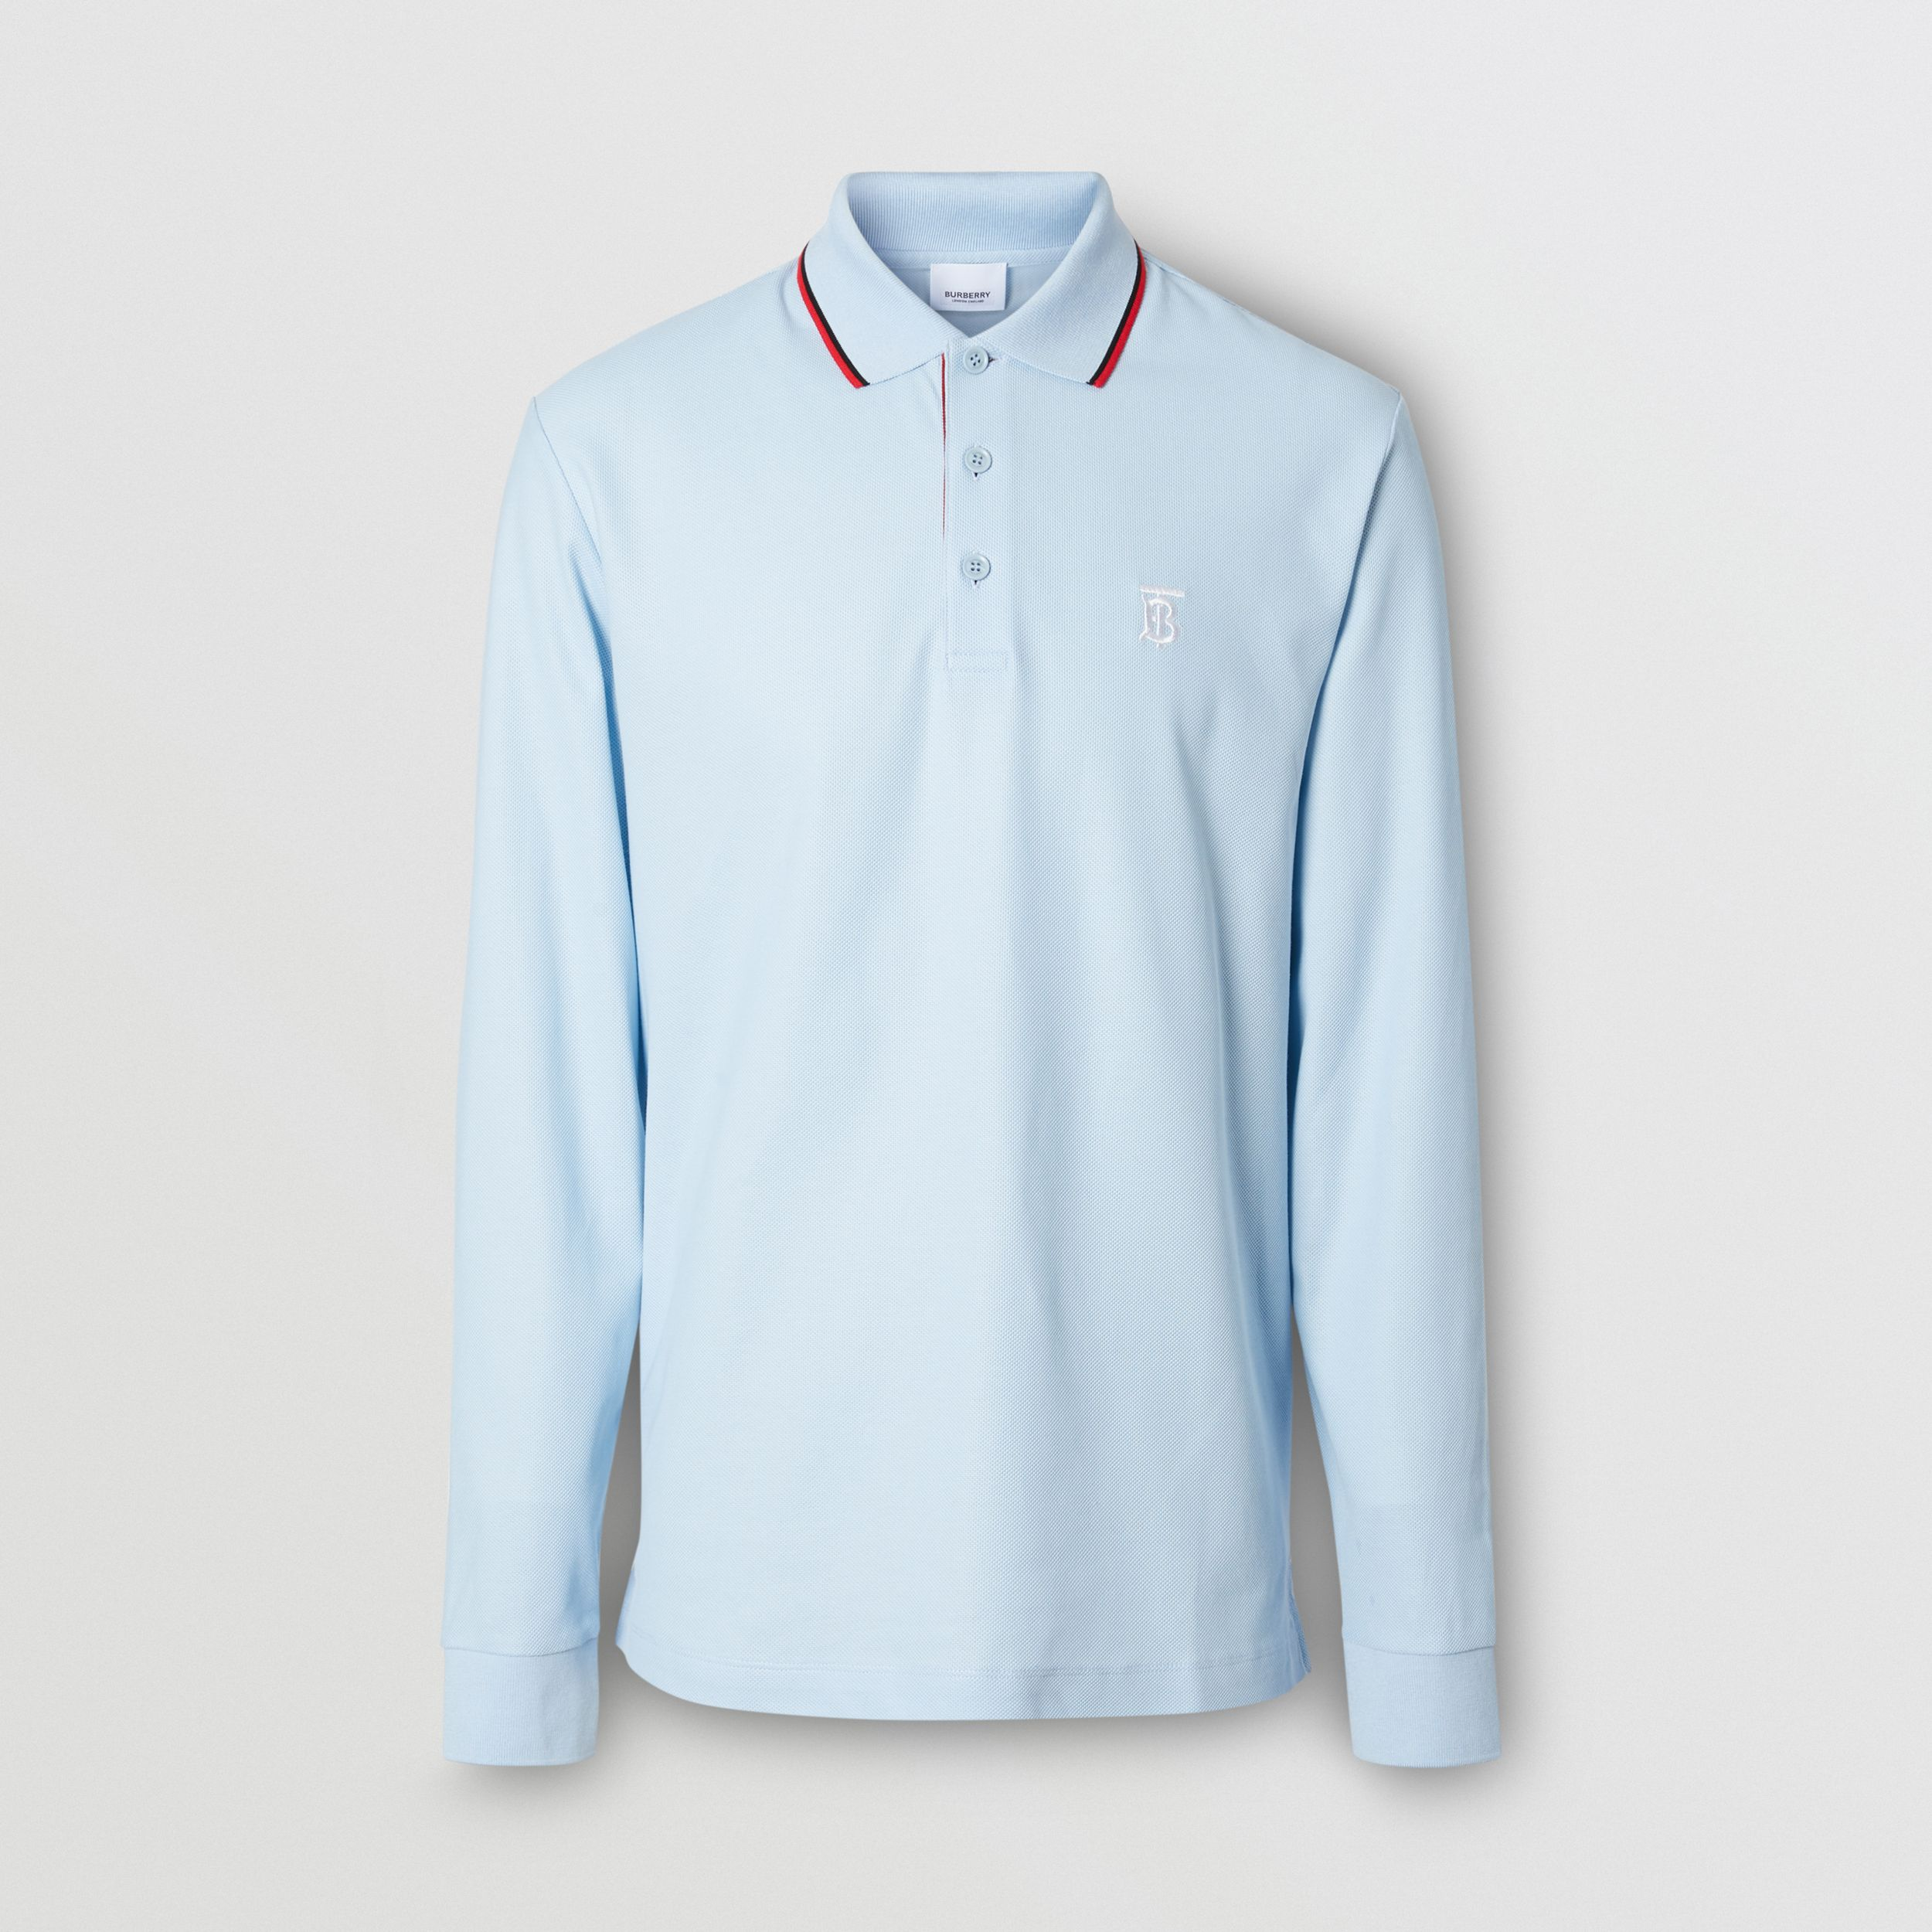 Long-sleeve Monogram Motif Cotton Piqué Polo Shirt in Pale Blue - Men | Burberry Hong Kong S.A.R. - 1